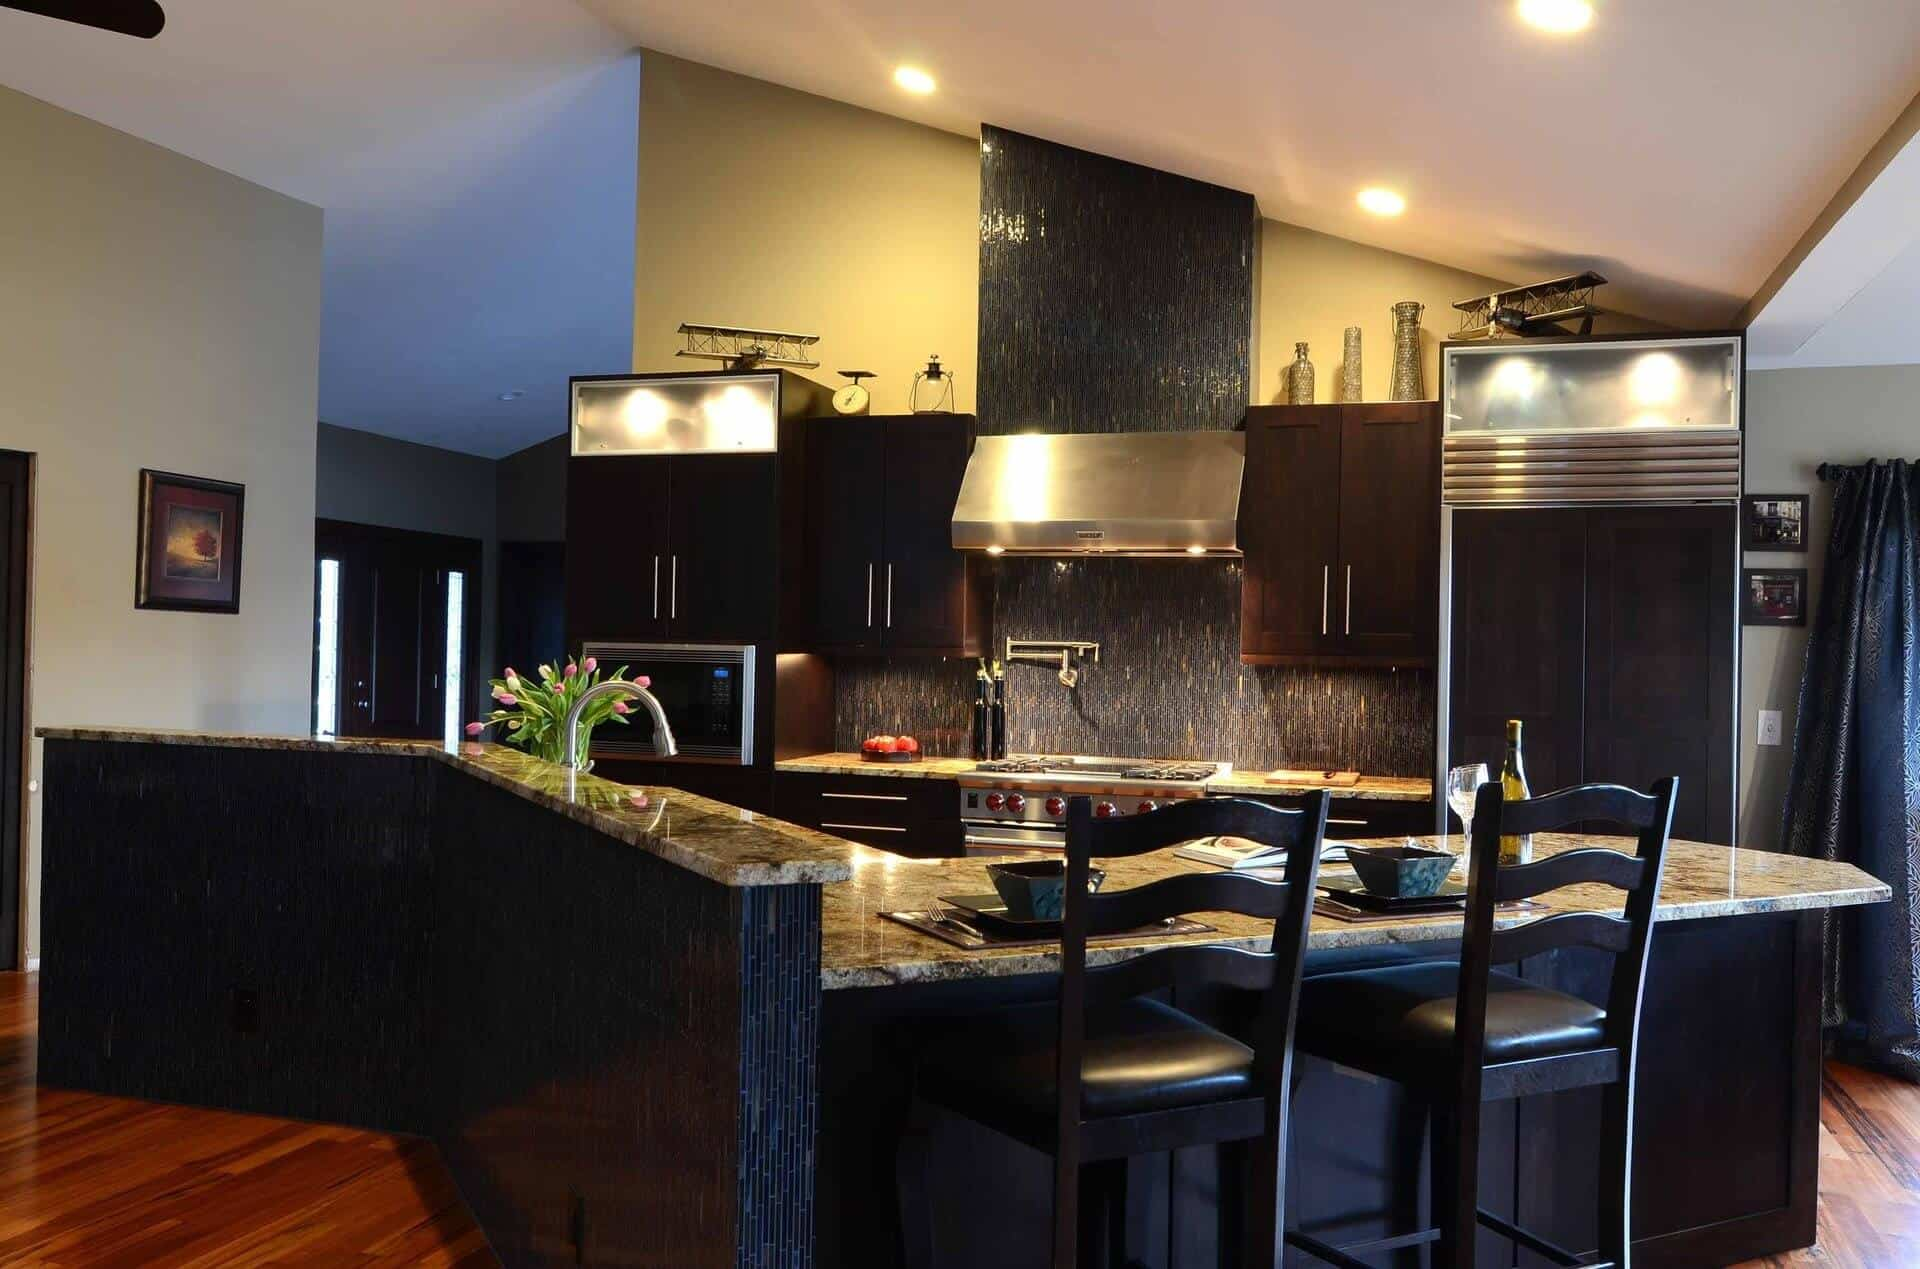 Kitchen Renovation Rochester Ny Custom Cabinets Kitchen Upgrades Contractors Ny